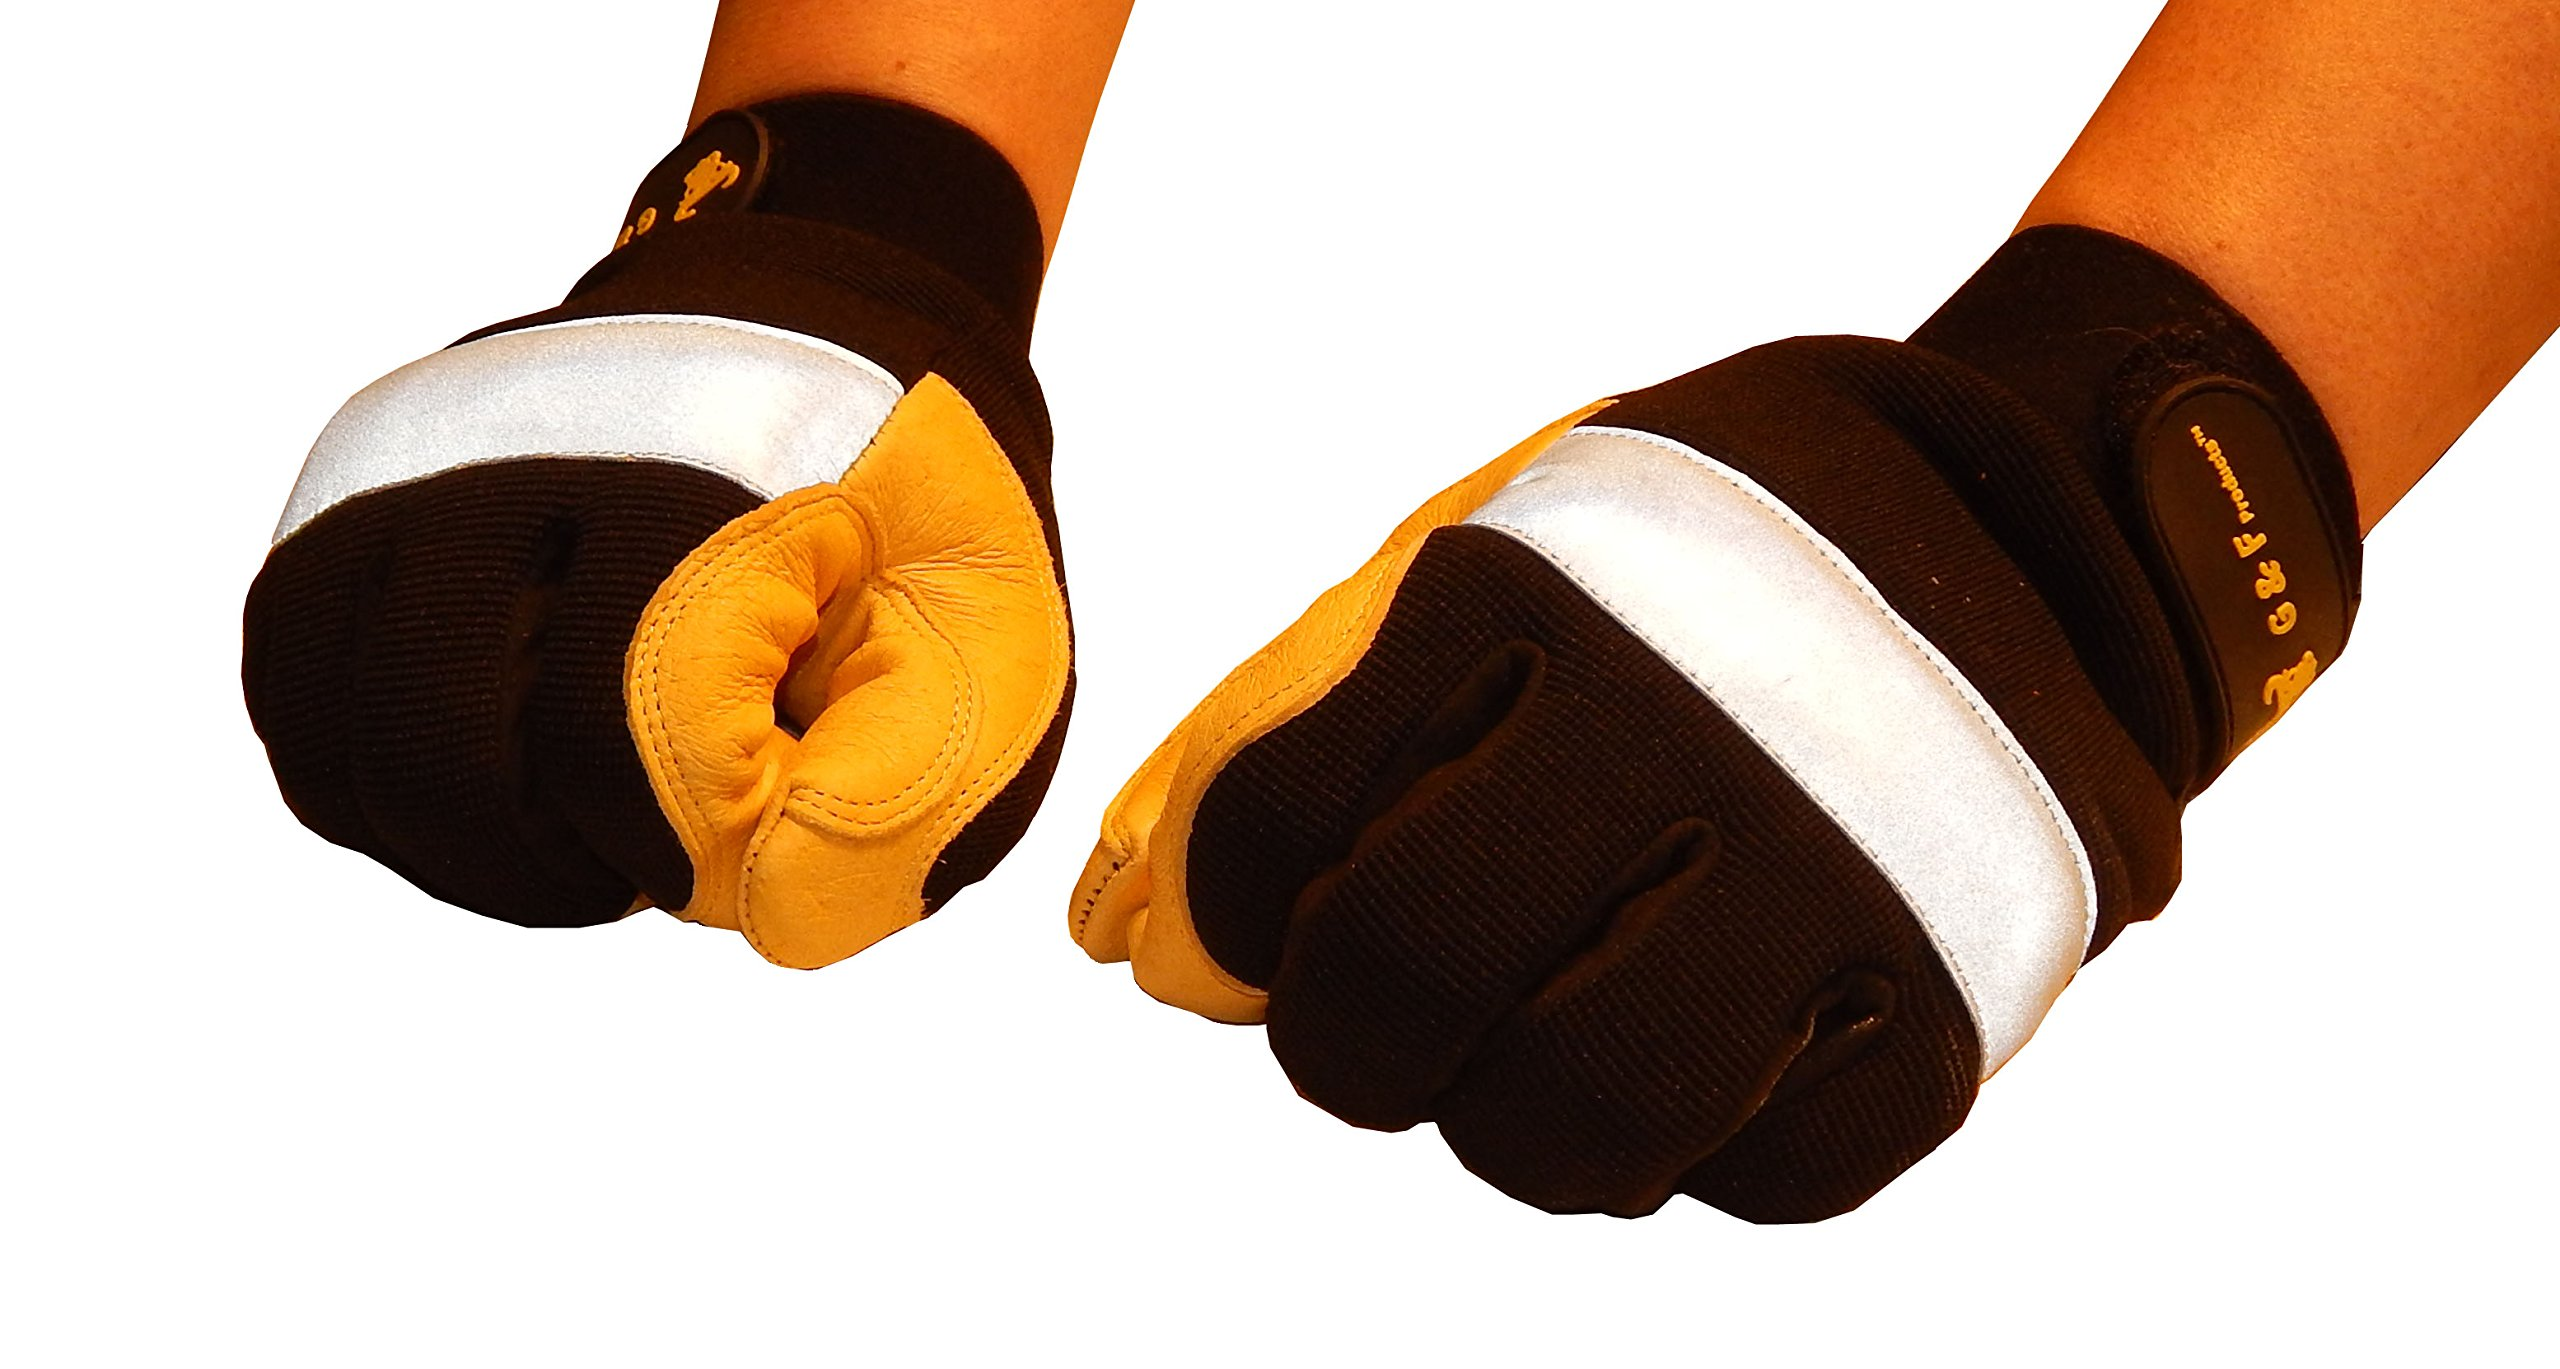 GF Gloves 1091XL-12 Dark Owl High Visibility Reflective Performance Gloves, X-Large, Yellow (Pack of 12) by GF Gloves (Image #3)